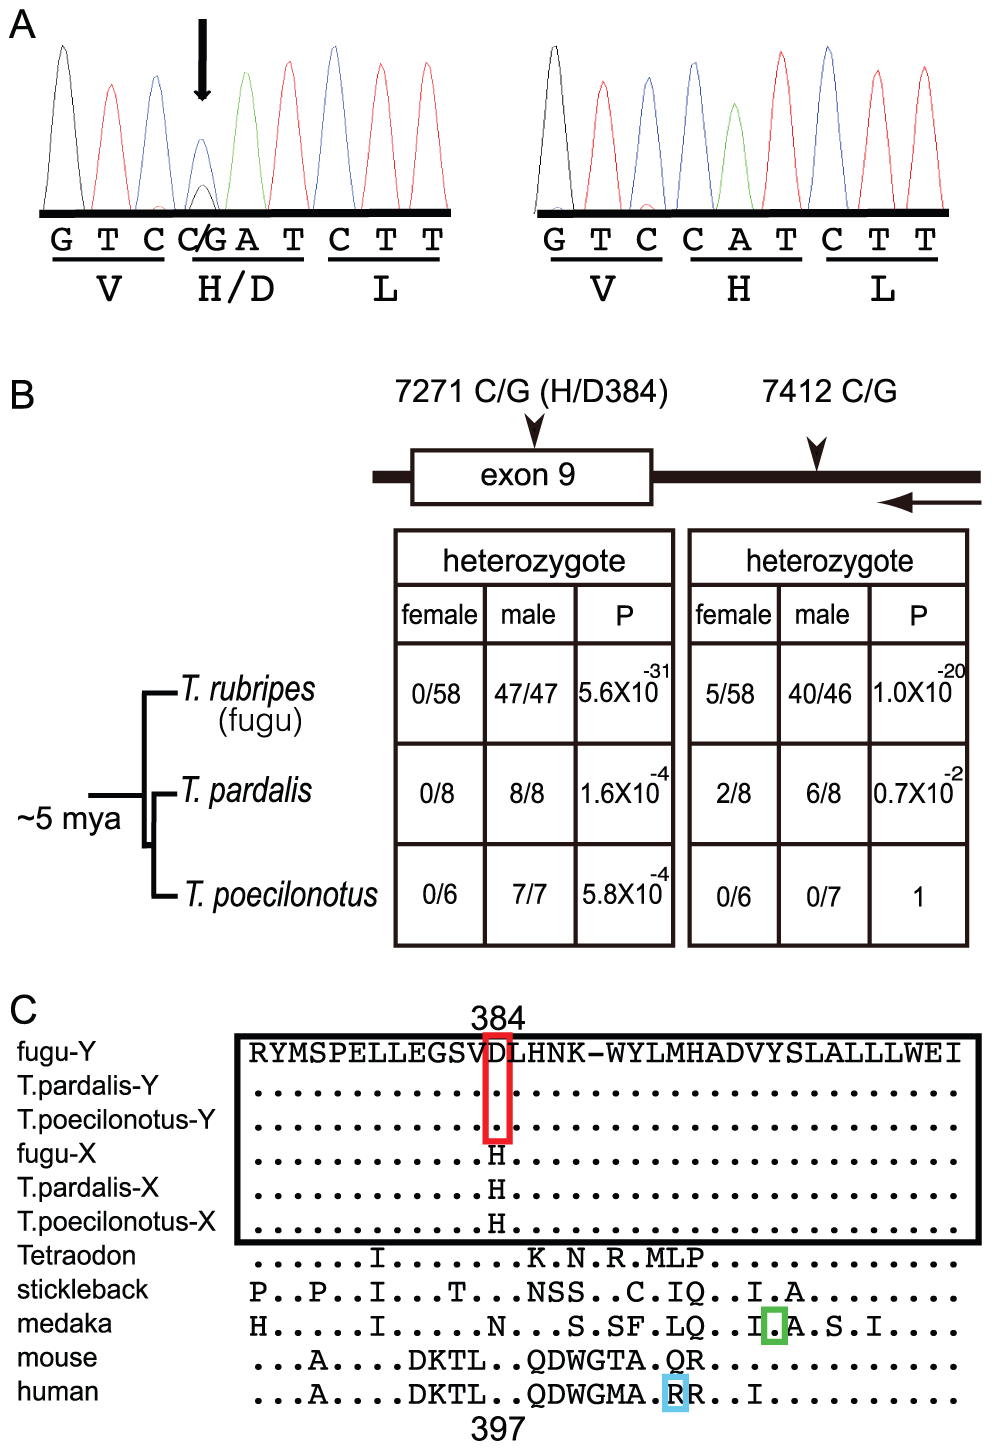 A trans-specific SNP in <i>Amhr2</i> is correlated with phenotypic sex in <i>Takifugu</i>.